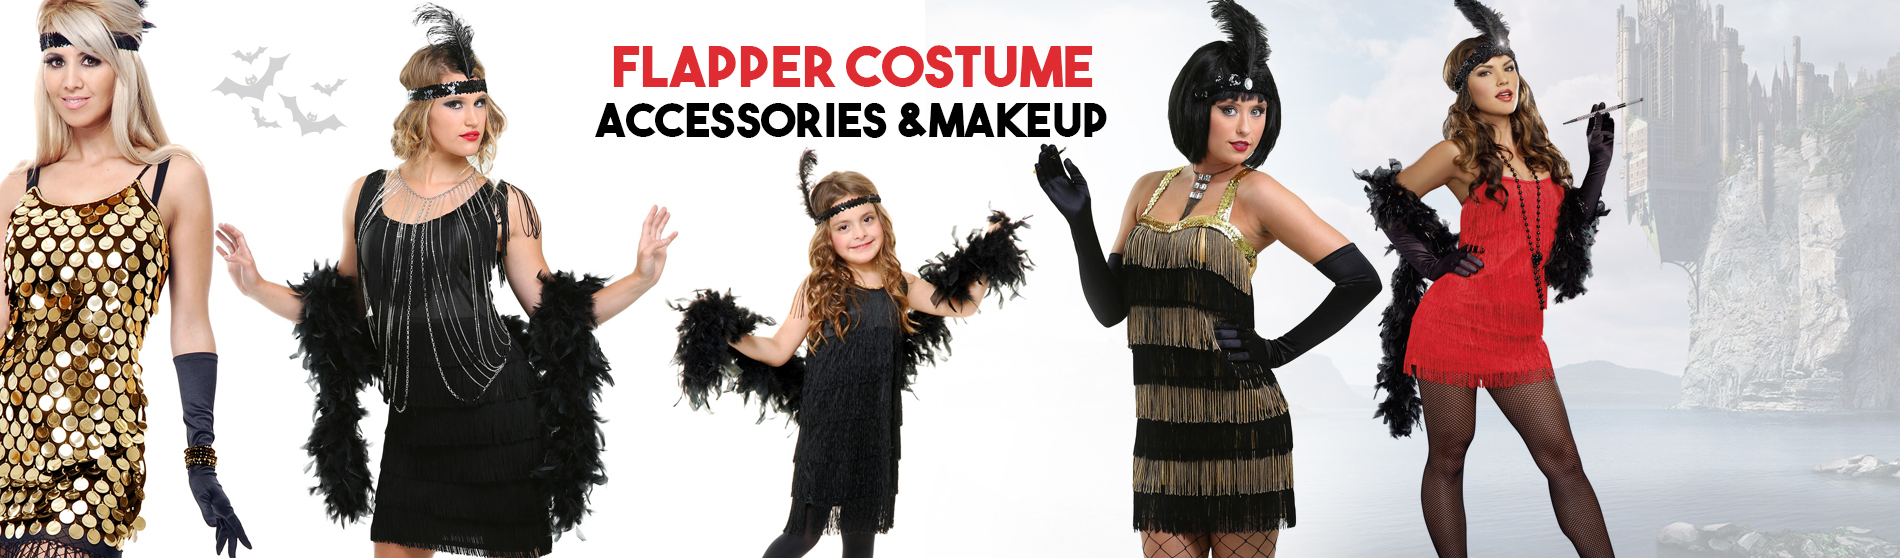 Flapper-Costume-Accessories-Makeup